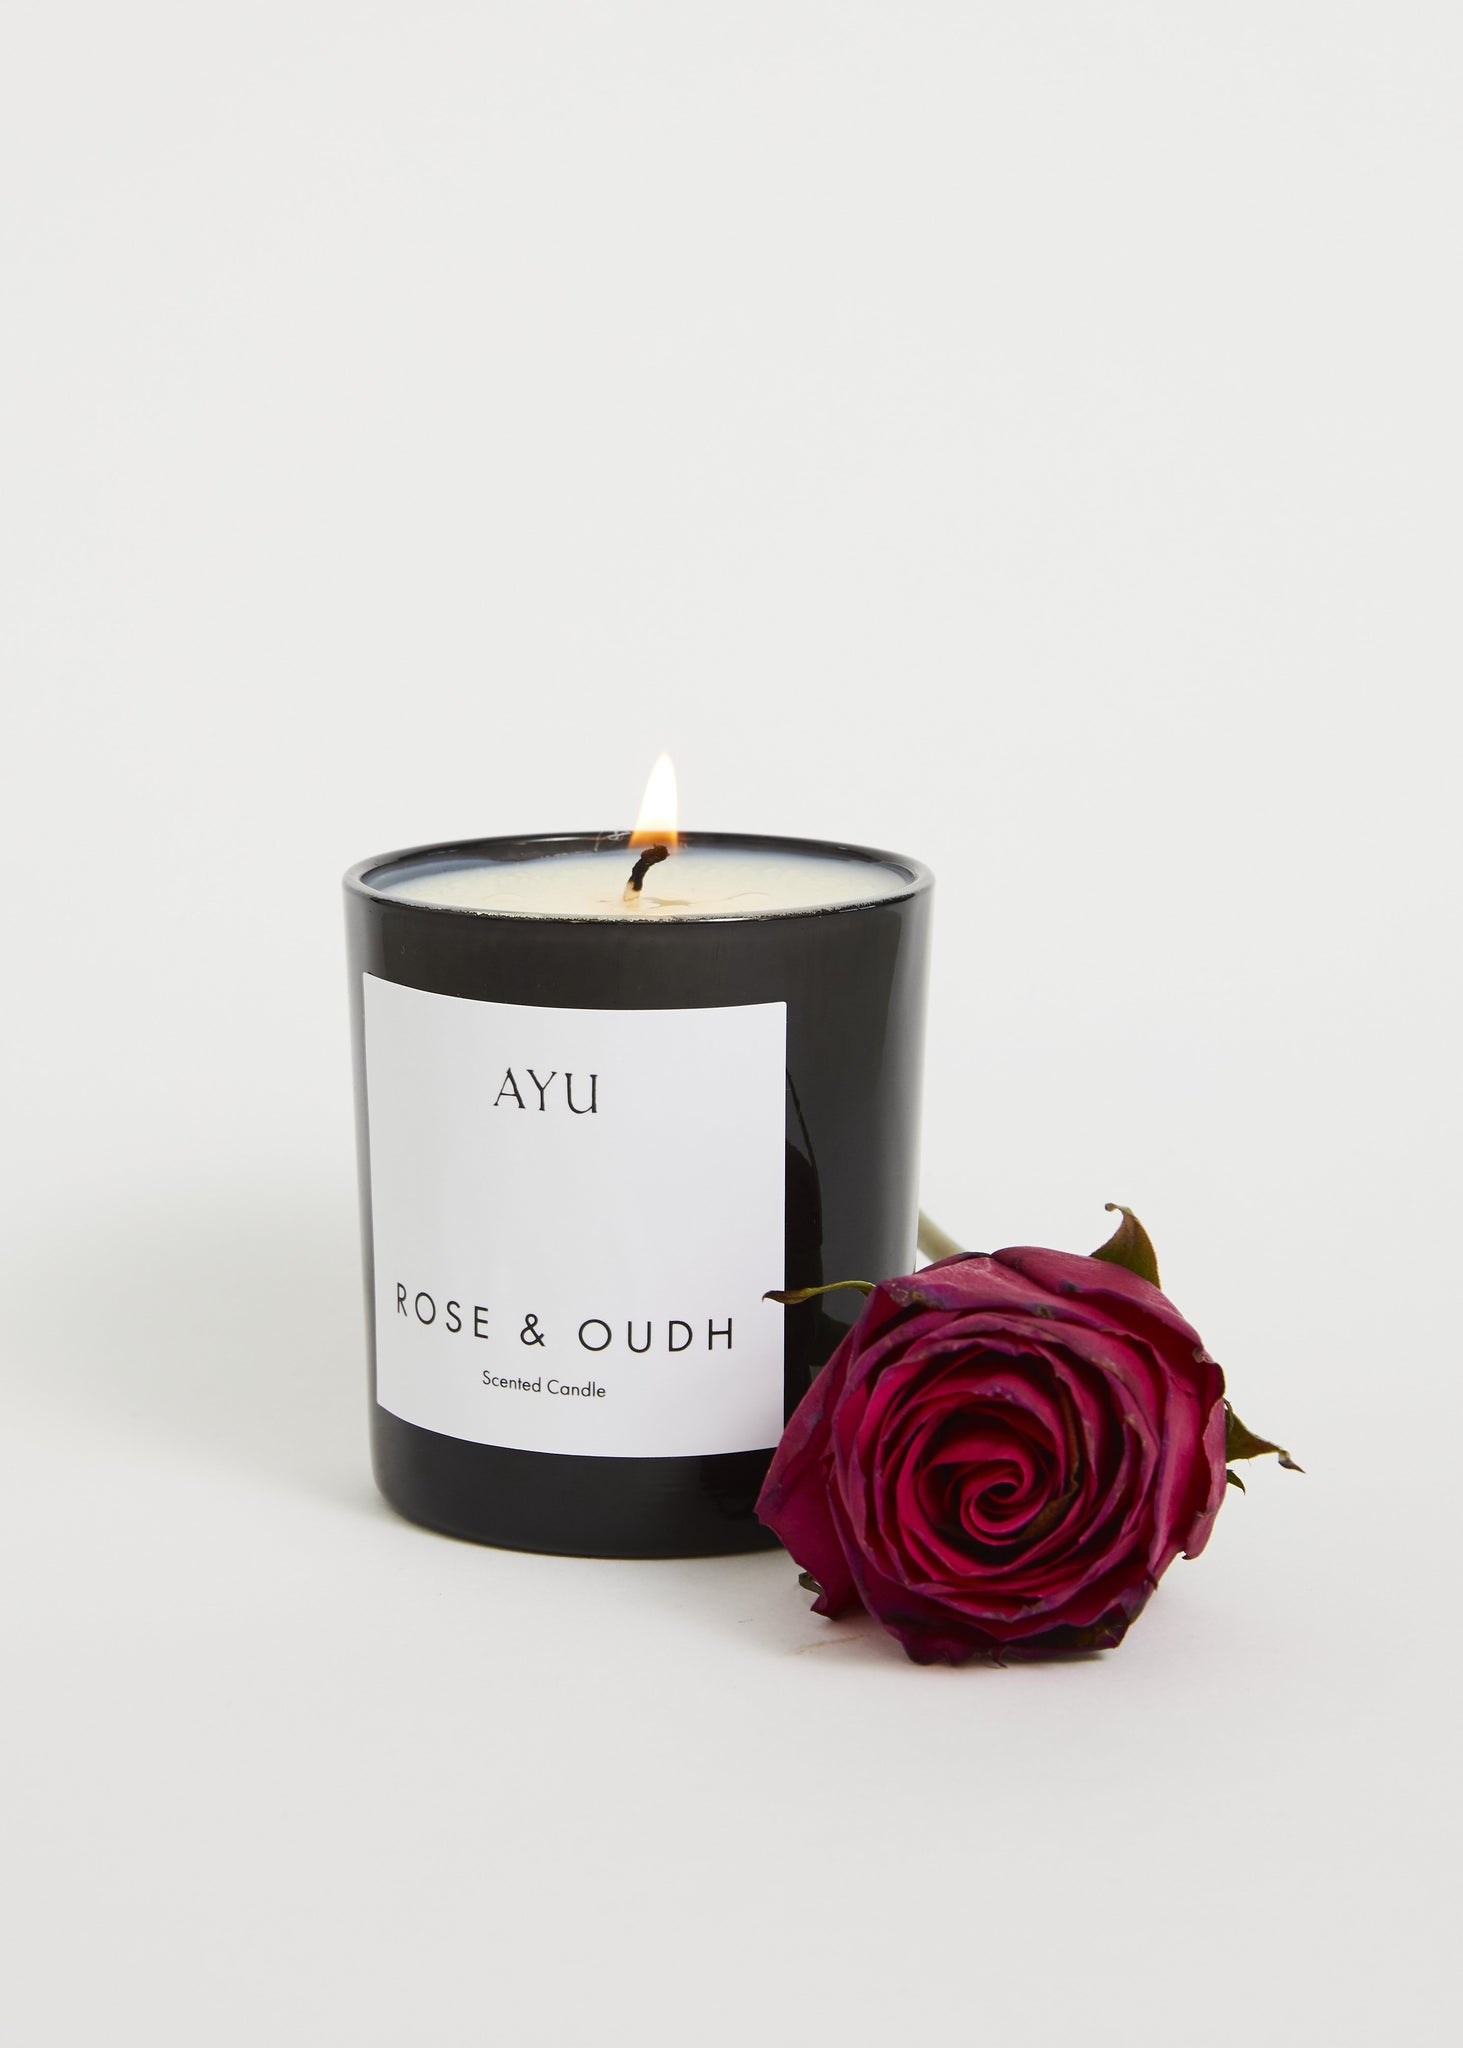 Rose & Oudh Candle